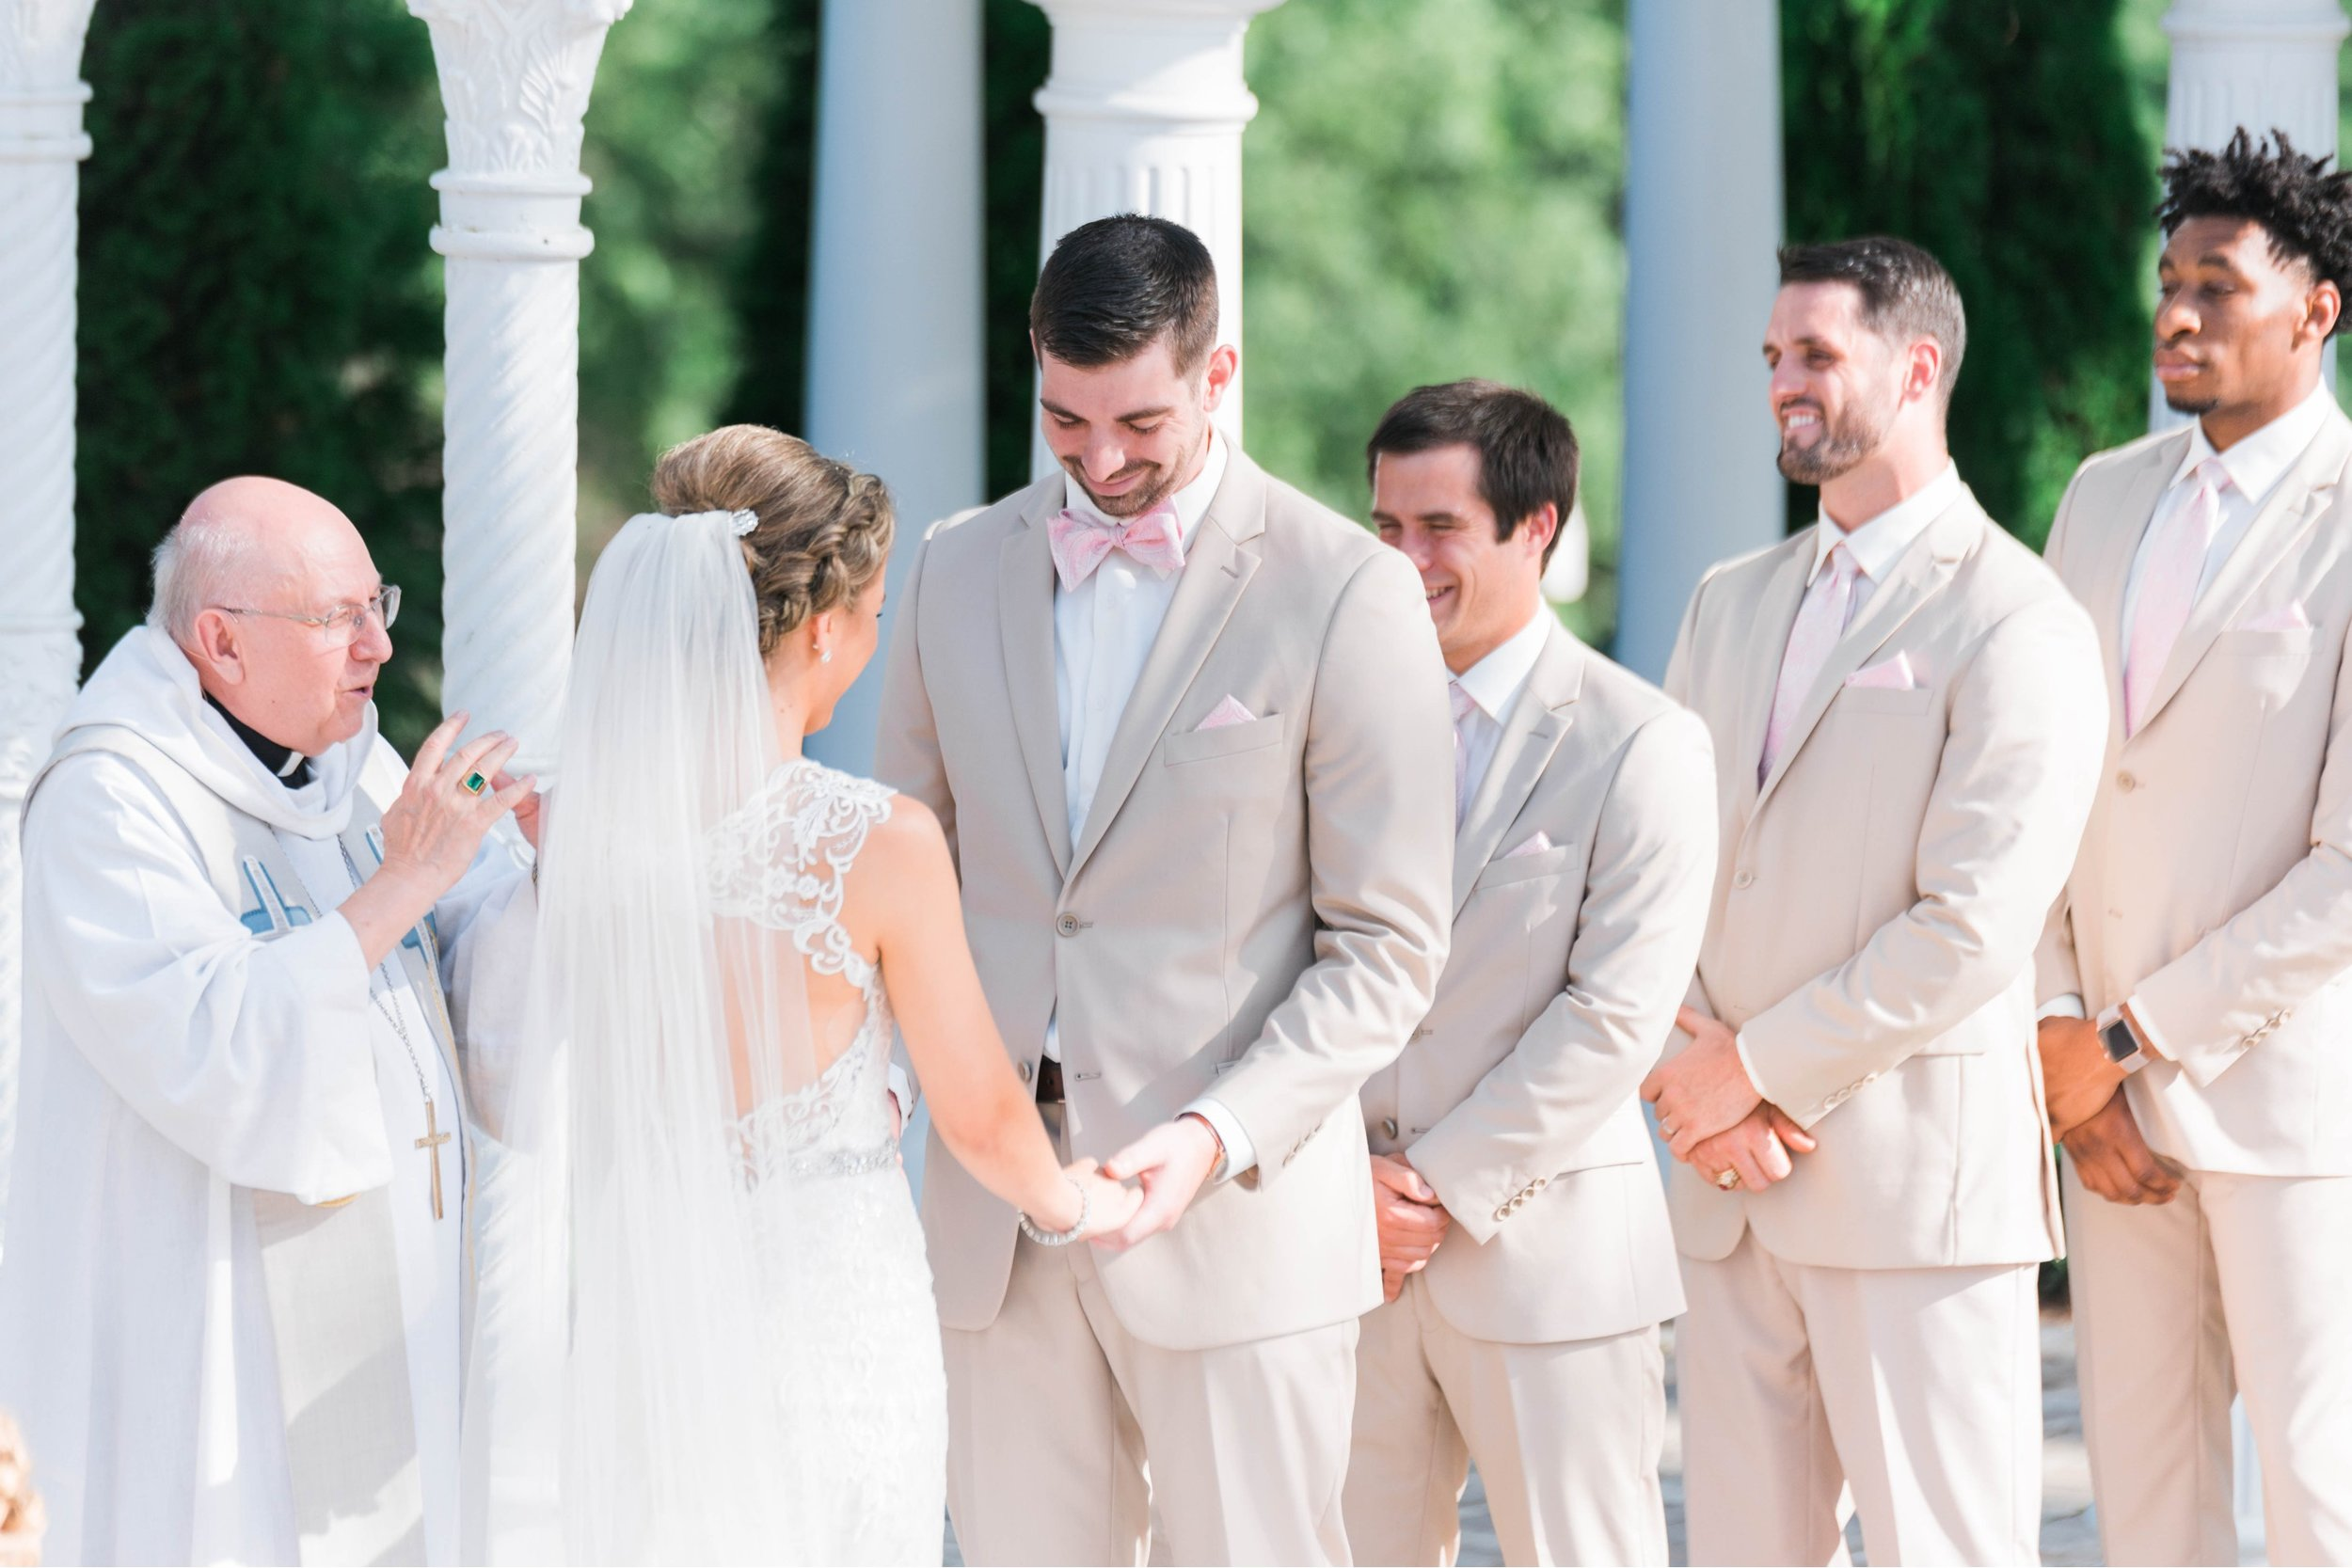 BedfordColumns_EntwinedEvents_Lynchburgwedding_VIrginiaweddingphotographer_ALlisonNIck 45.jpg